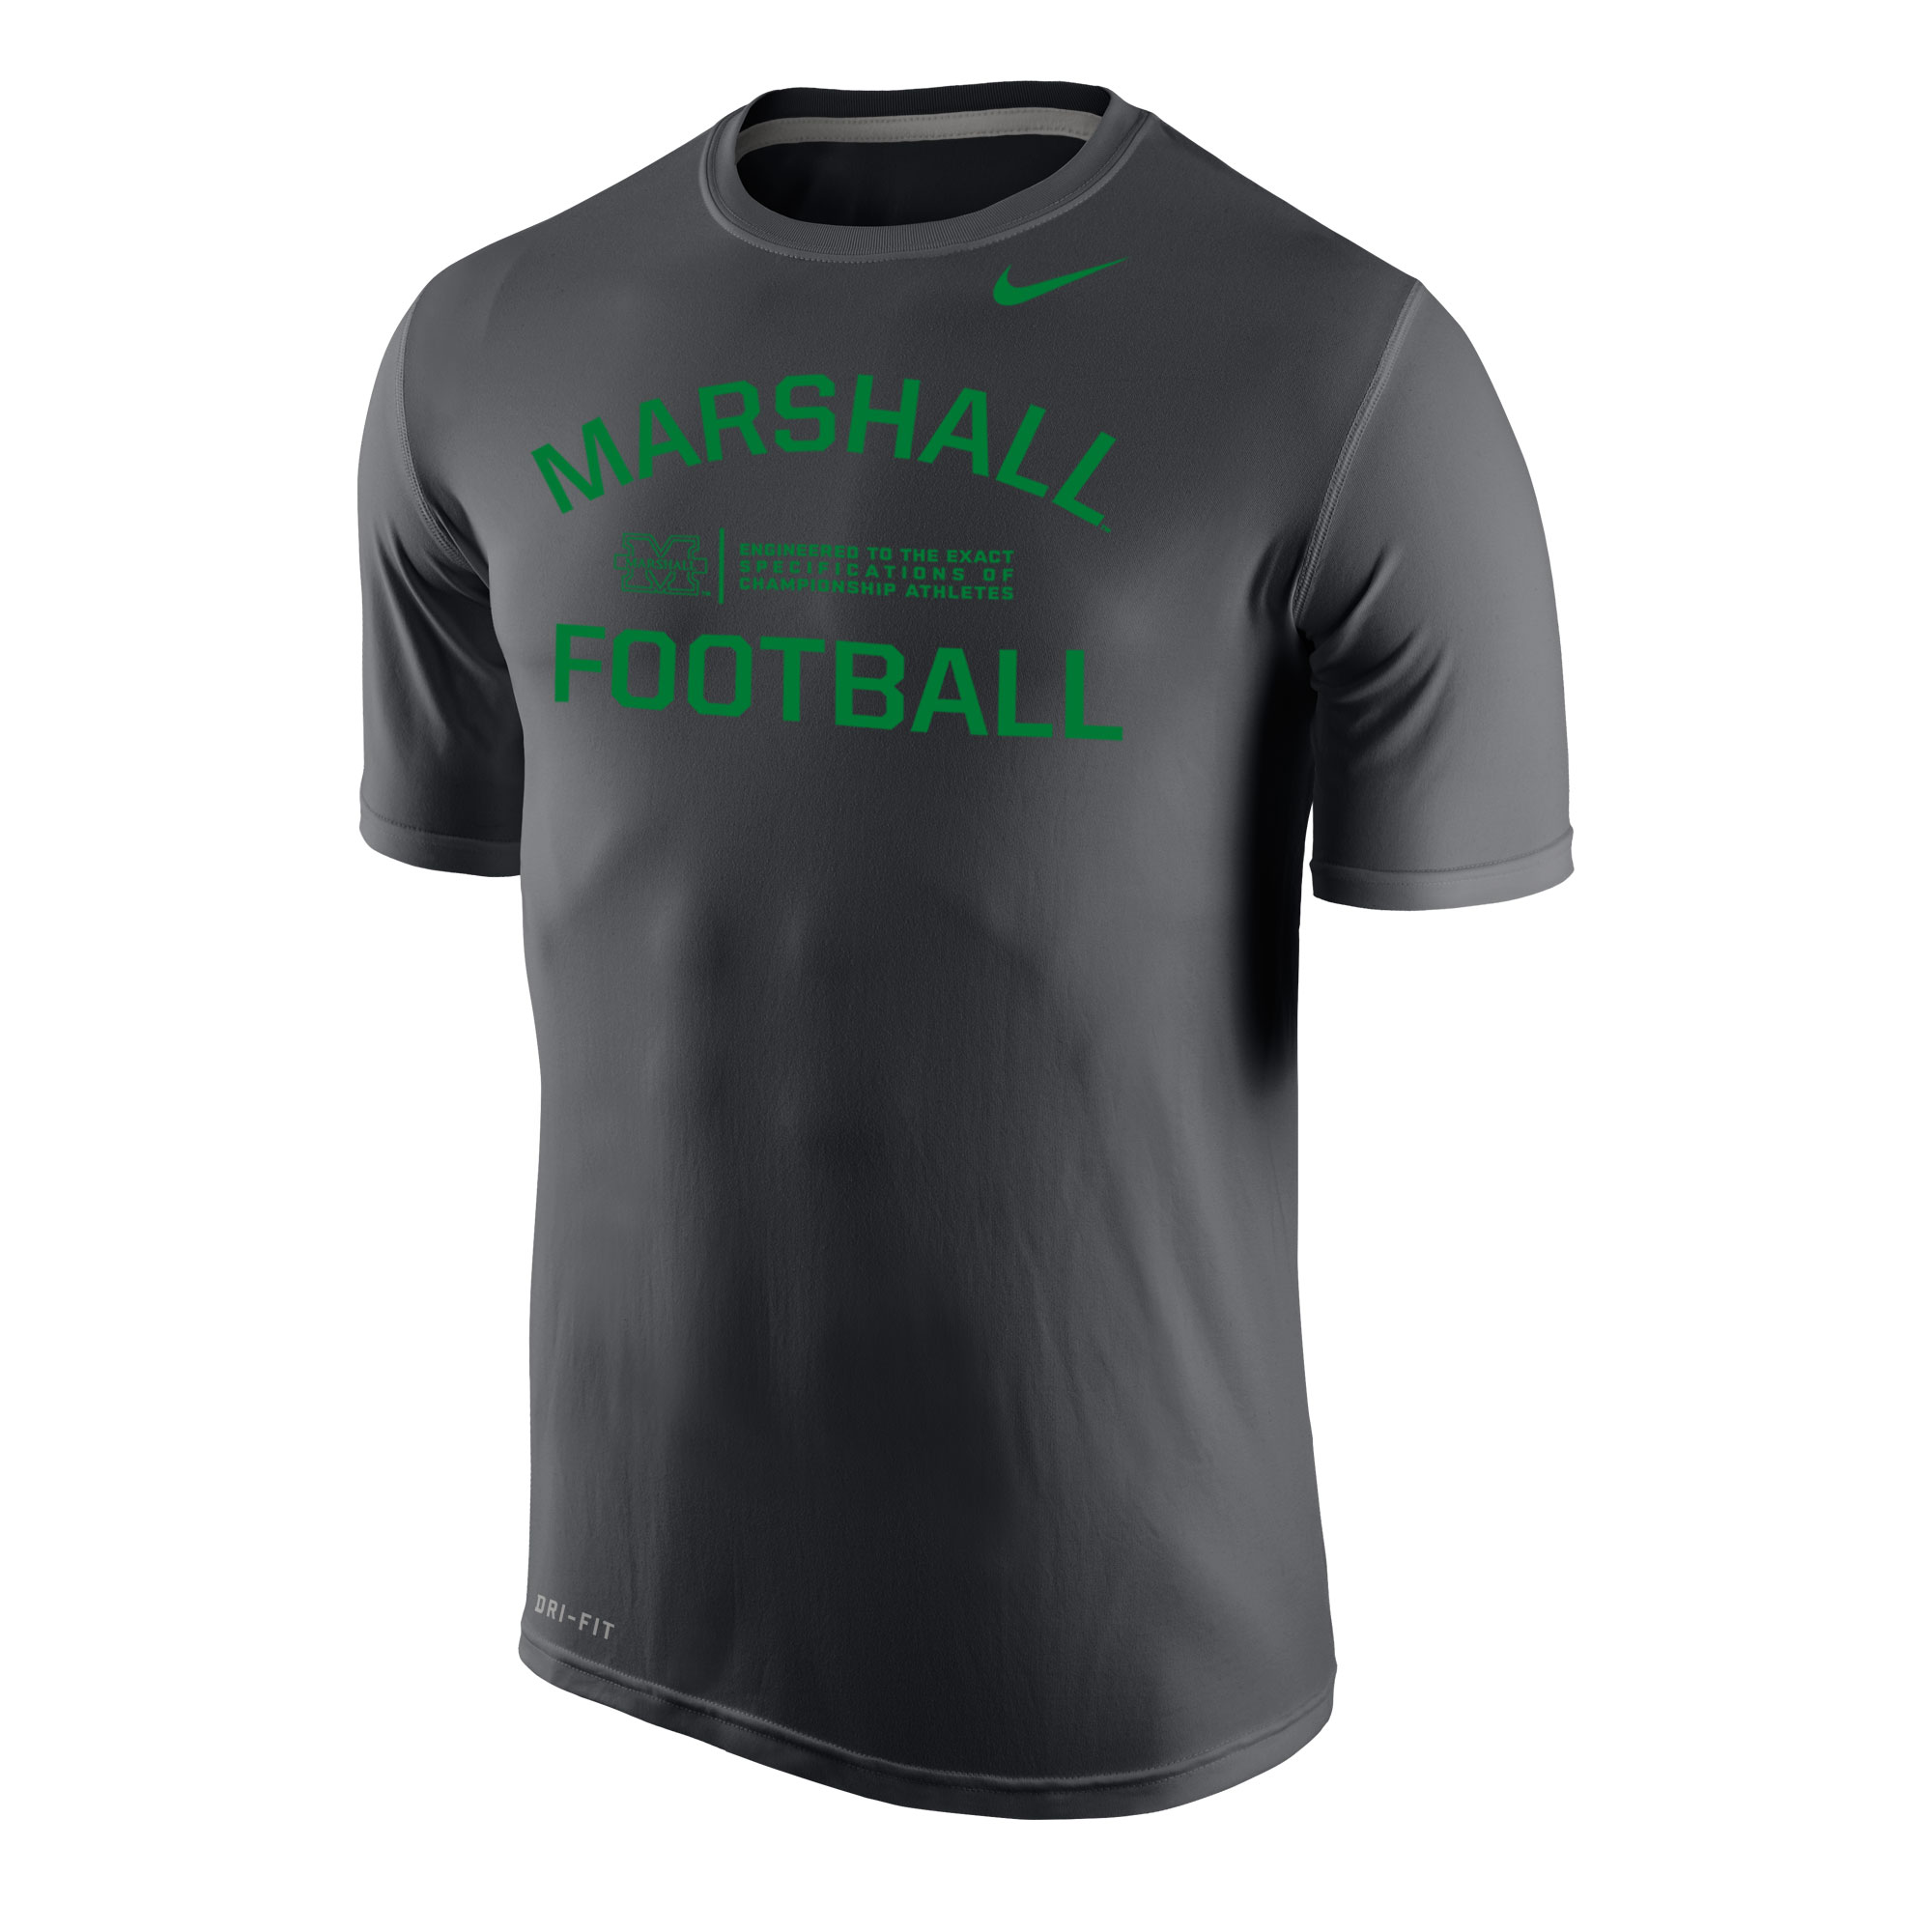 Nike <br> Legend Dri-fit T <br> Youth Sizes <br> $26.99